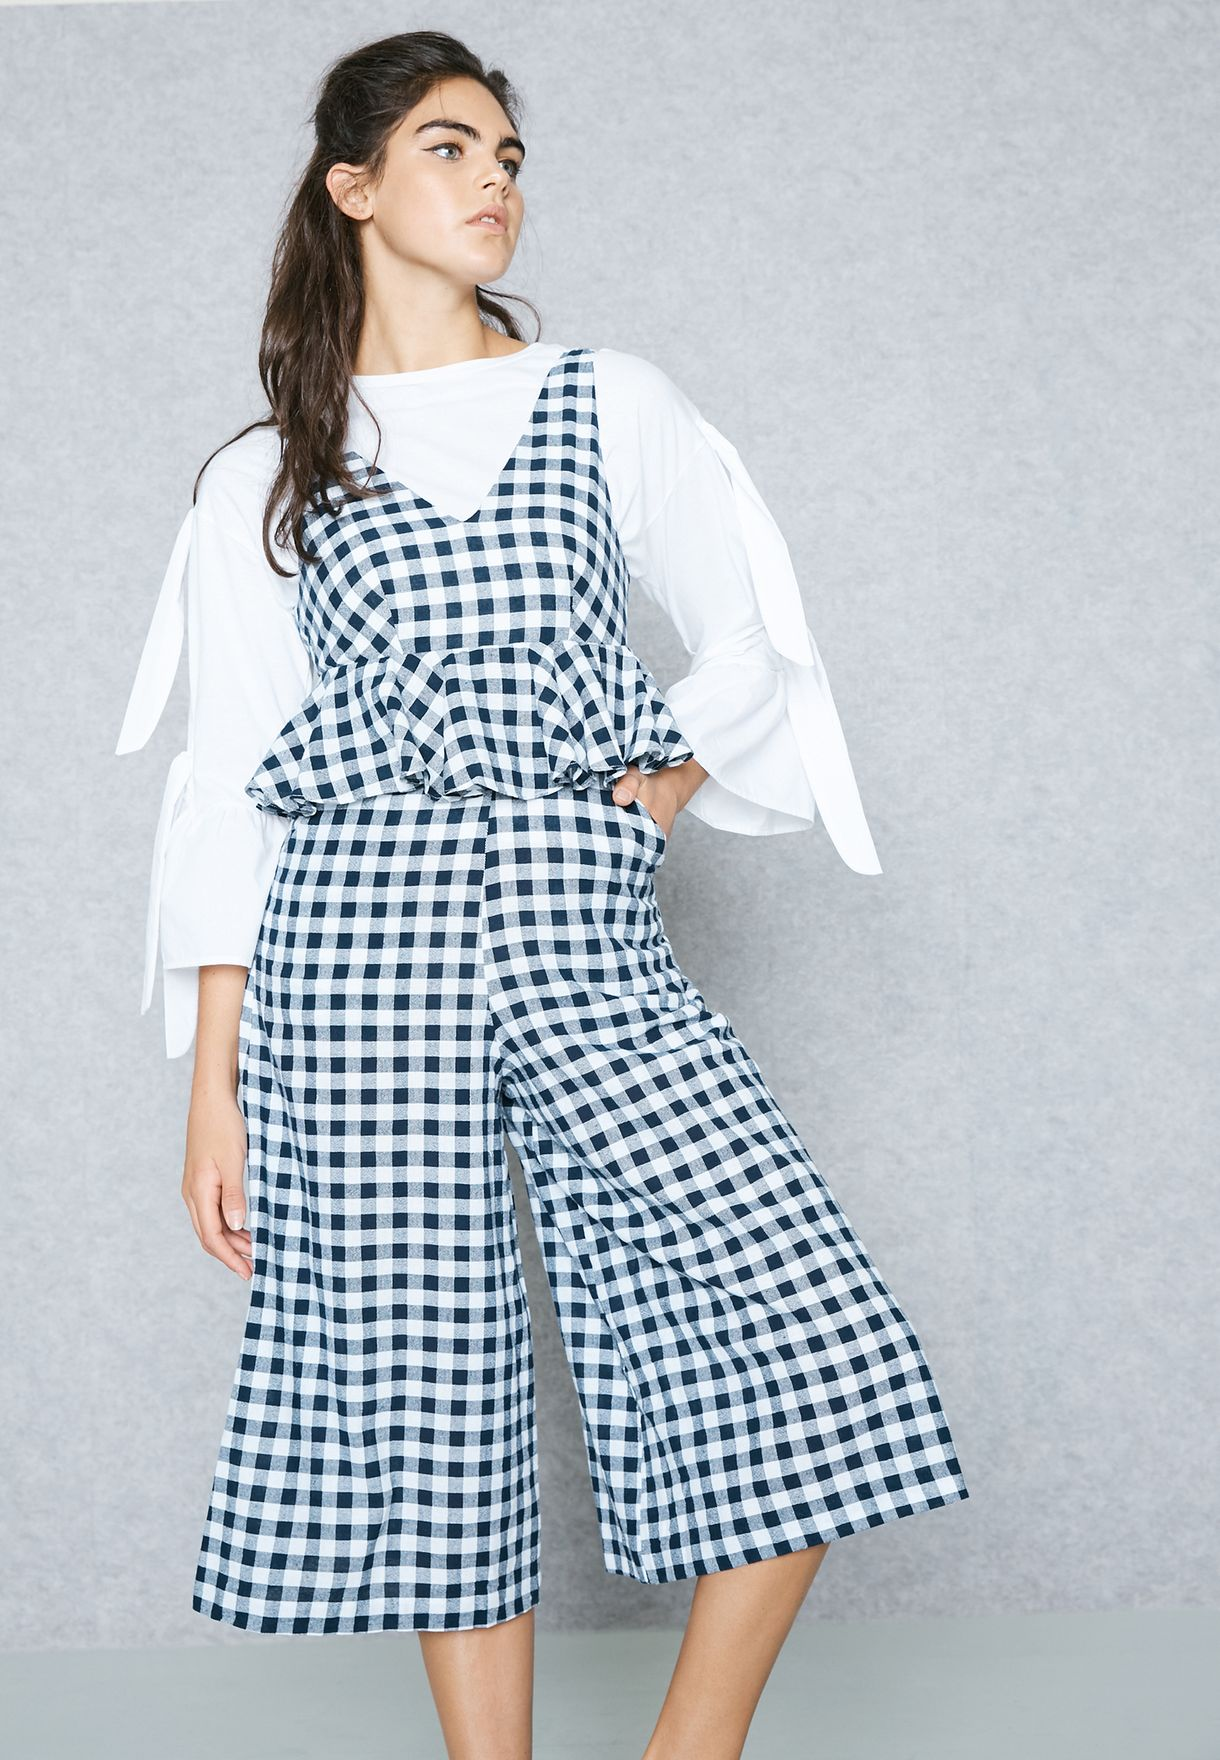 621e1c242f4 Shop Lost Ink prints Ruffle Detail Checked Jumpsuit 0501122150270040 for  Women in Kuwait - LO956AT98BKB